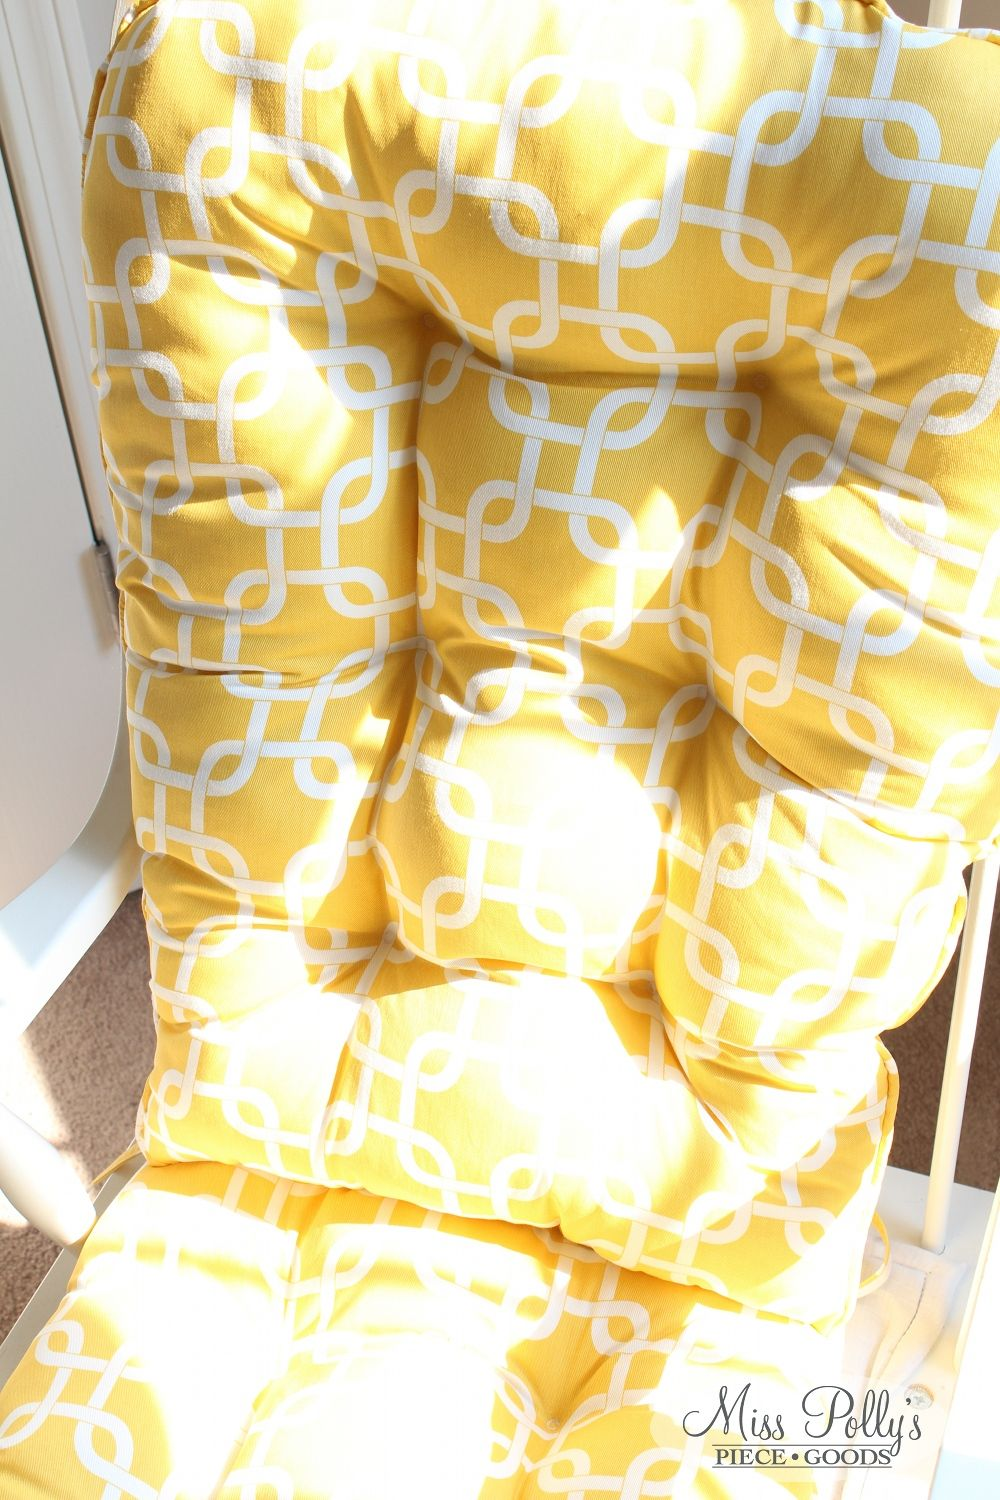 Lovely Custom Made Glider Cushions In Yellow U0027Gotchau0027 Fabric Available From  MissPollysPieceGoods Https:/